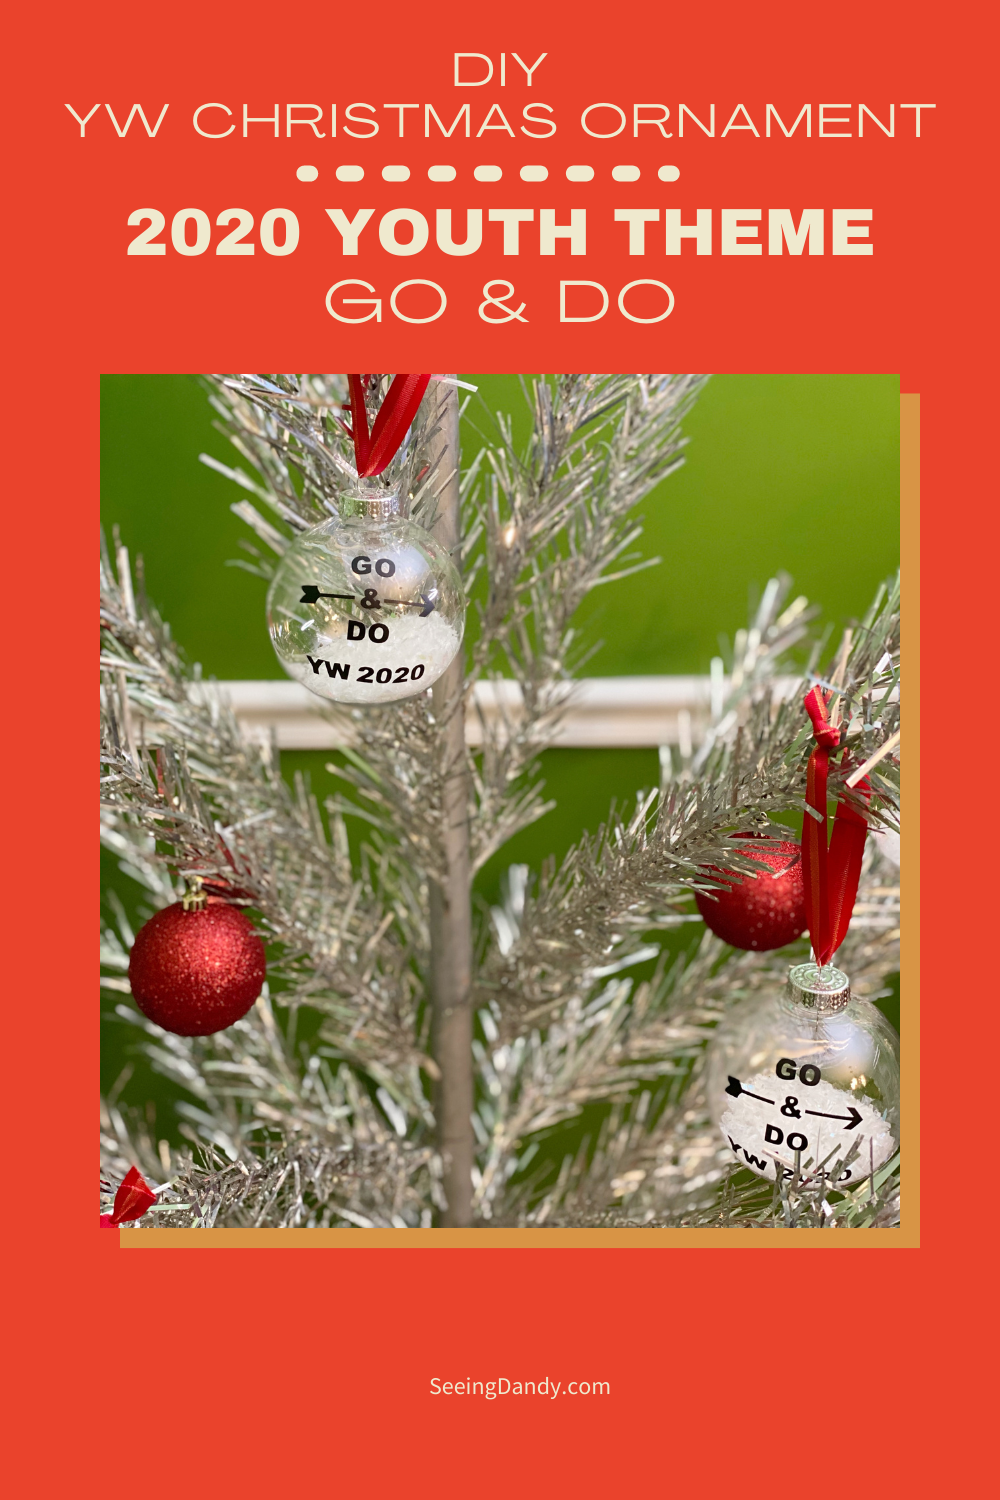 DIY YW Christmas ornament, clear ball ornaments, craft ornaments, plastic ornaments, 2020 youth theme, vintage christmas tree, lds christmas ornaments, aluminum christmas tree, retro red christmas ornaments, go and do, the church of jesus christ of latter day saints, silver tree, easy to make christmas ornaments, free svg file